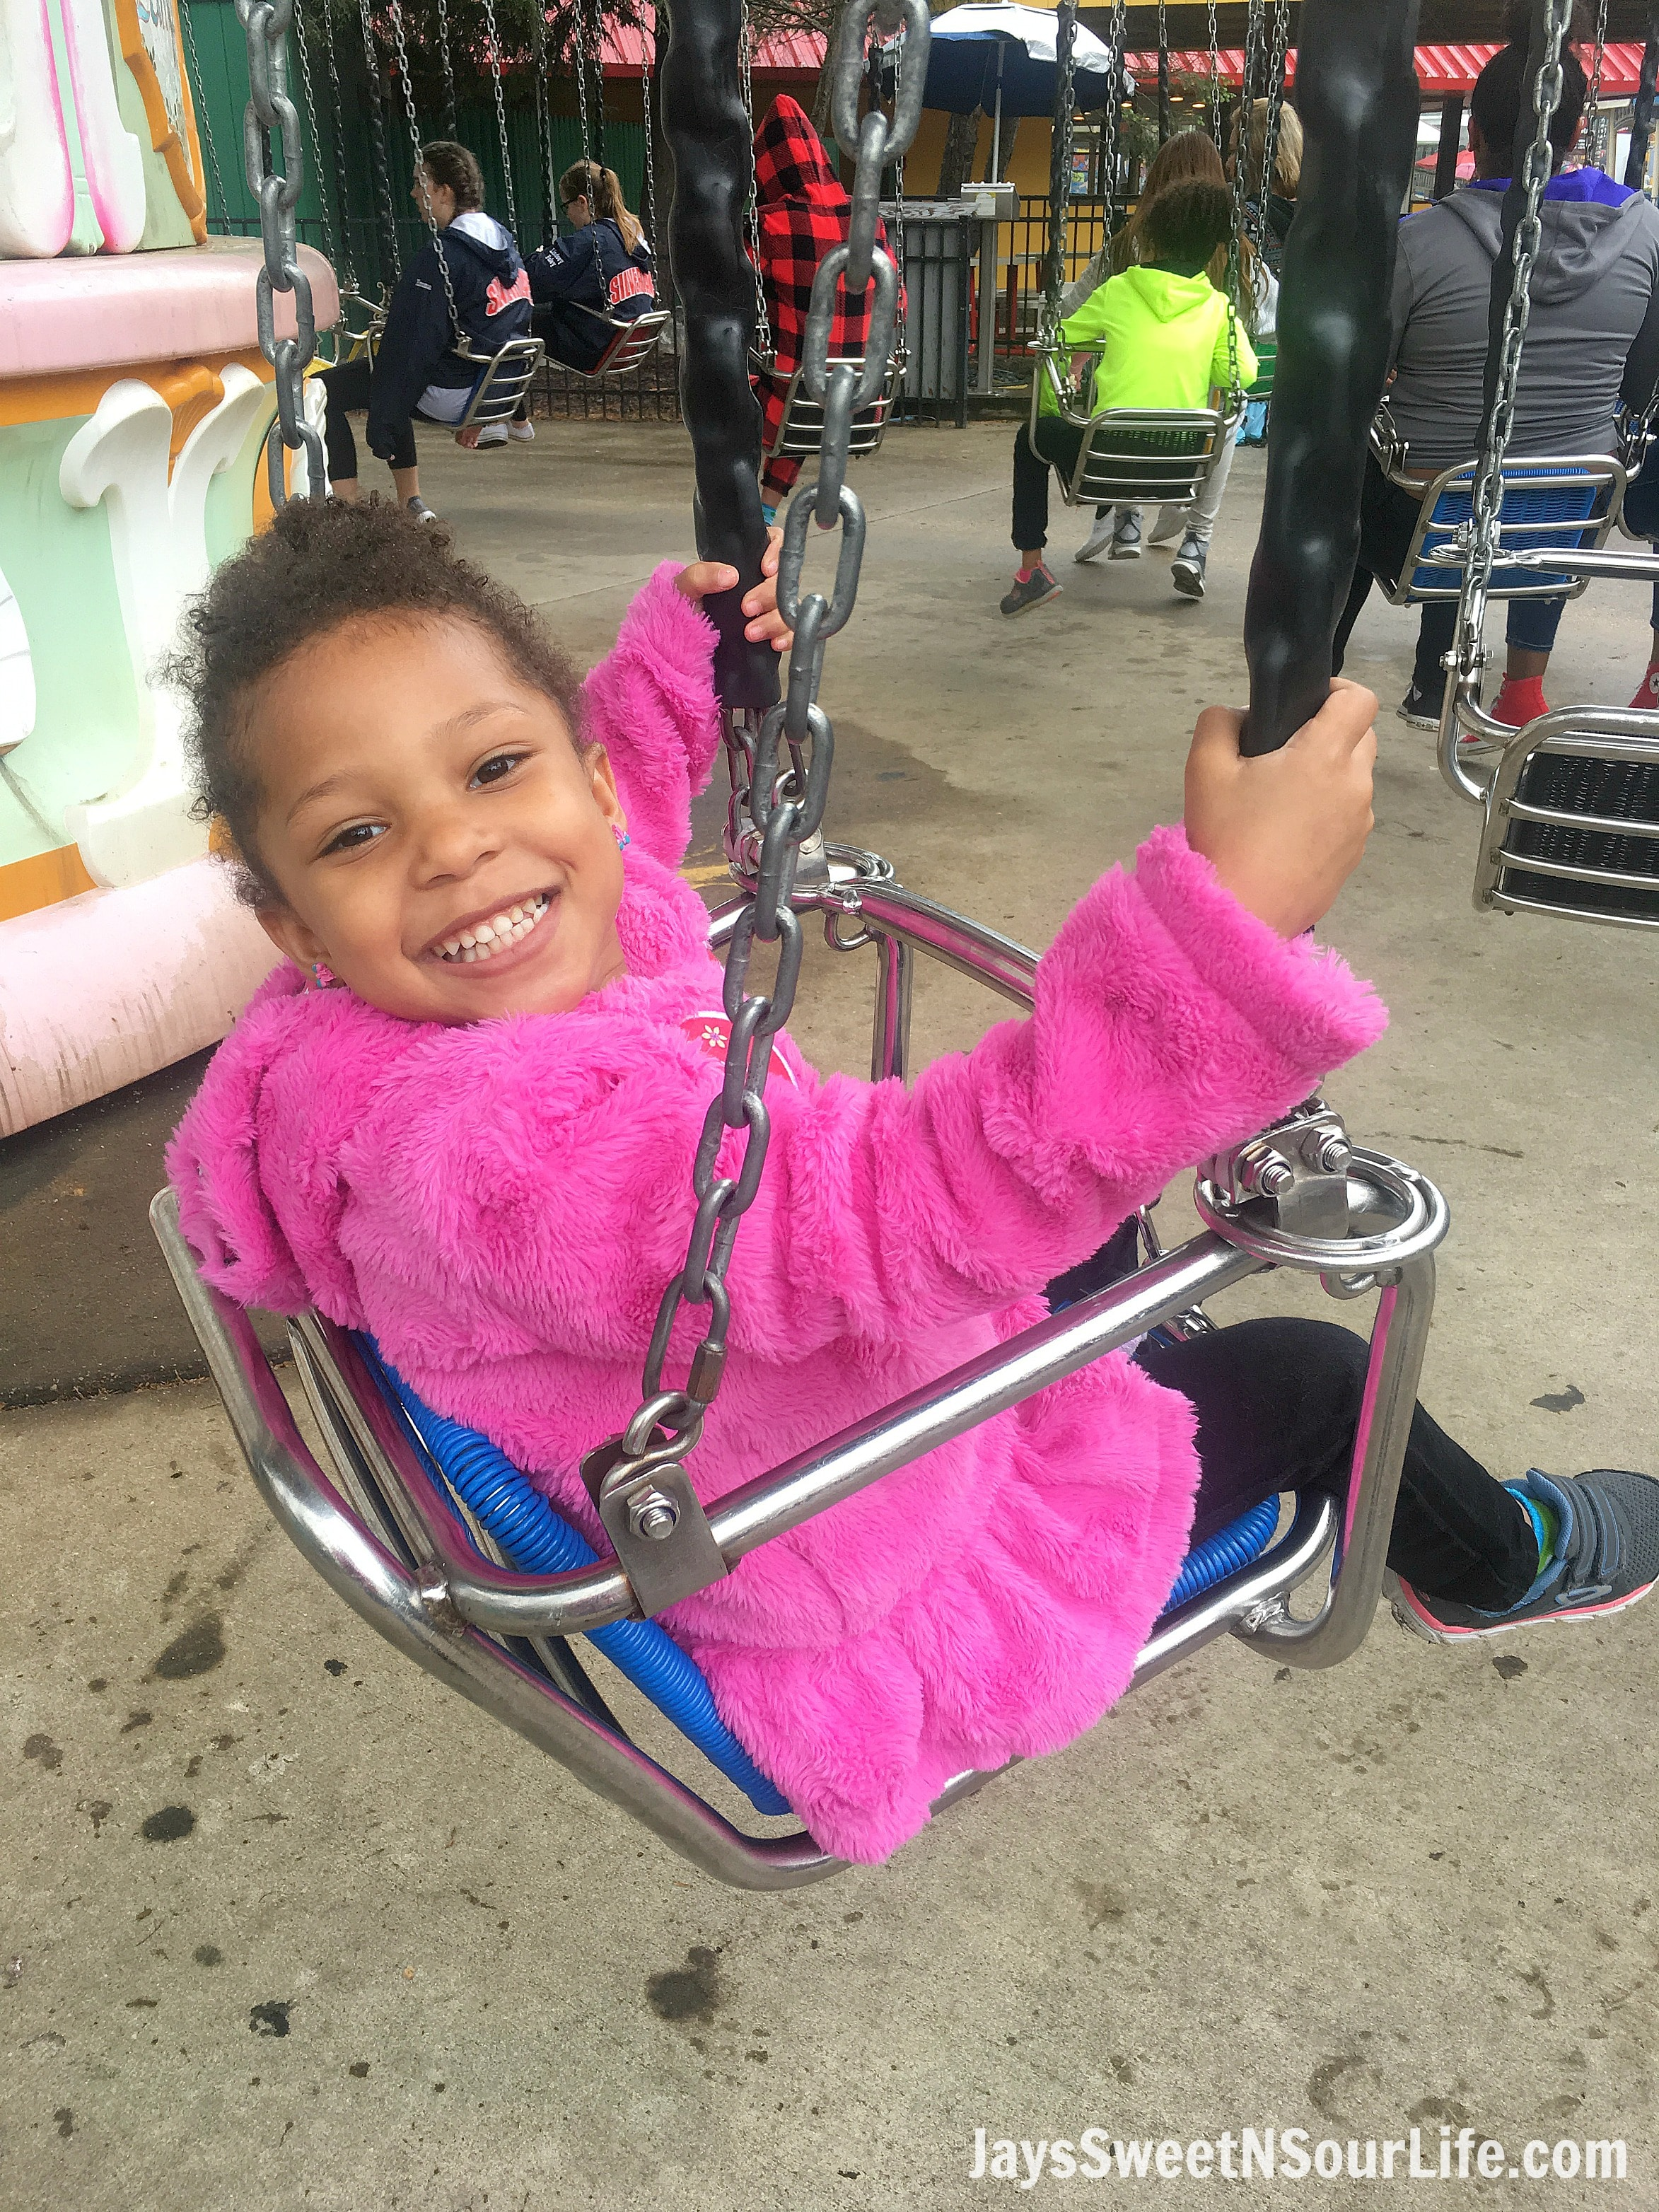 8 Tips For Rainy Day Fun At Six Flags America Esuun Swing. If you are planning a trip to Six Flags America and realized the weather calls for rain don't cancel your plans! These 8 Tips For Rainy Day Fun At Six Flags America will save the day.